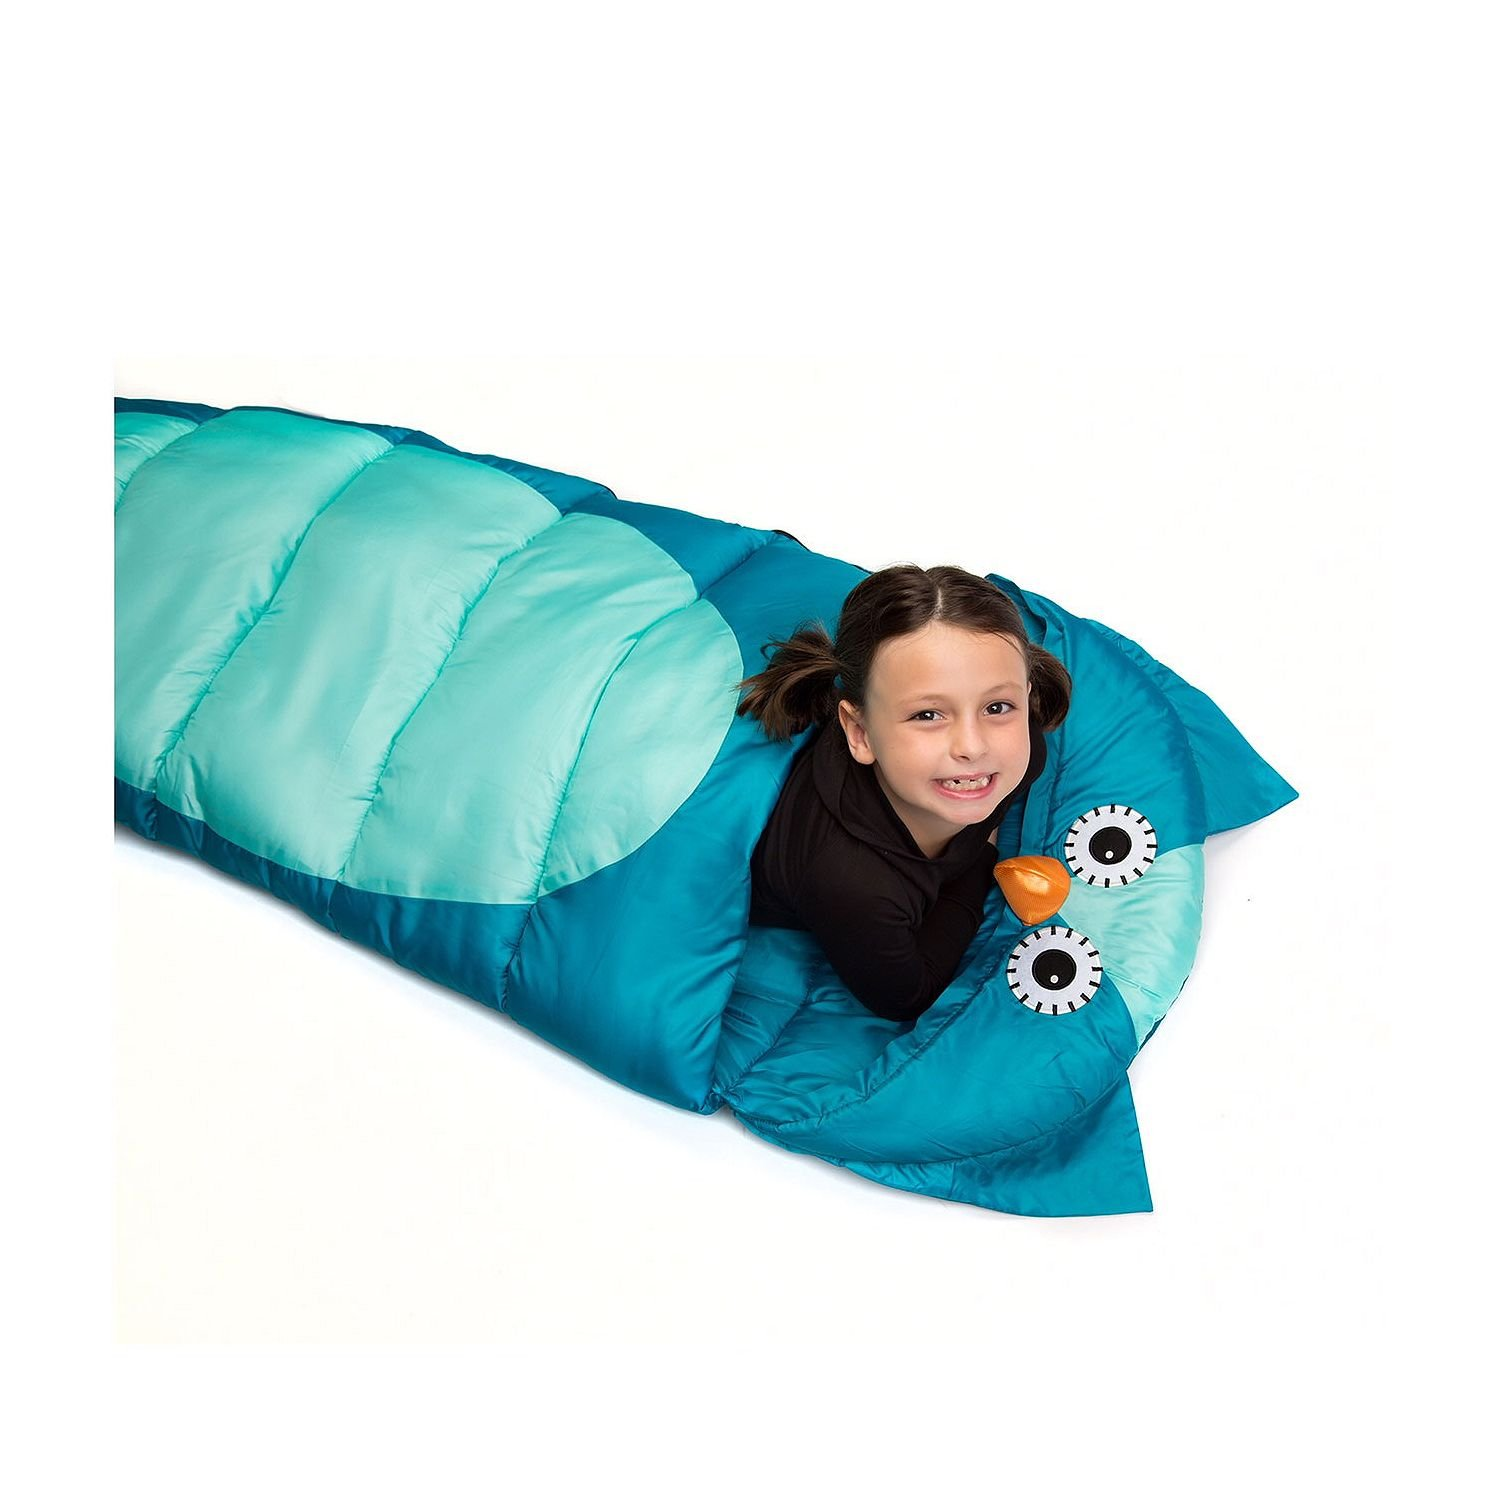 Outdoor Sleeping Bag Kid's Animal, Owl